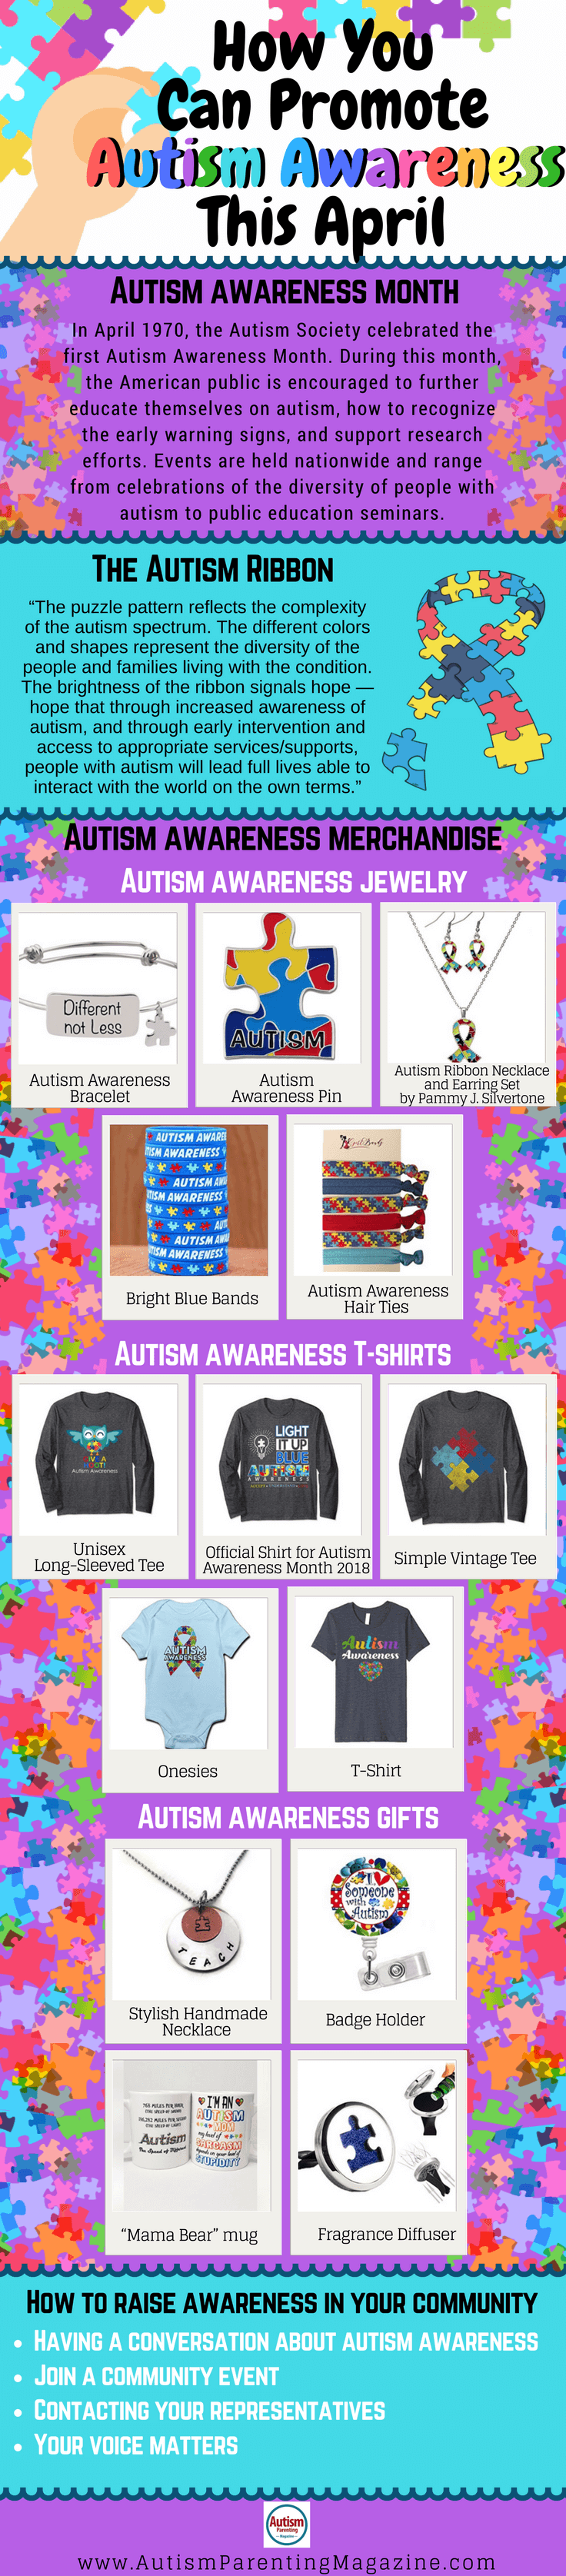 Download our Free Guide - How You Can Promote Autism Awareness This April http://www.autismparentingmagazine.com/promote-autism-awareness/